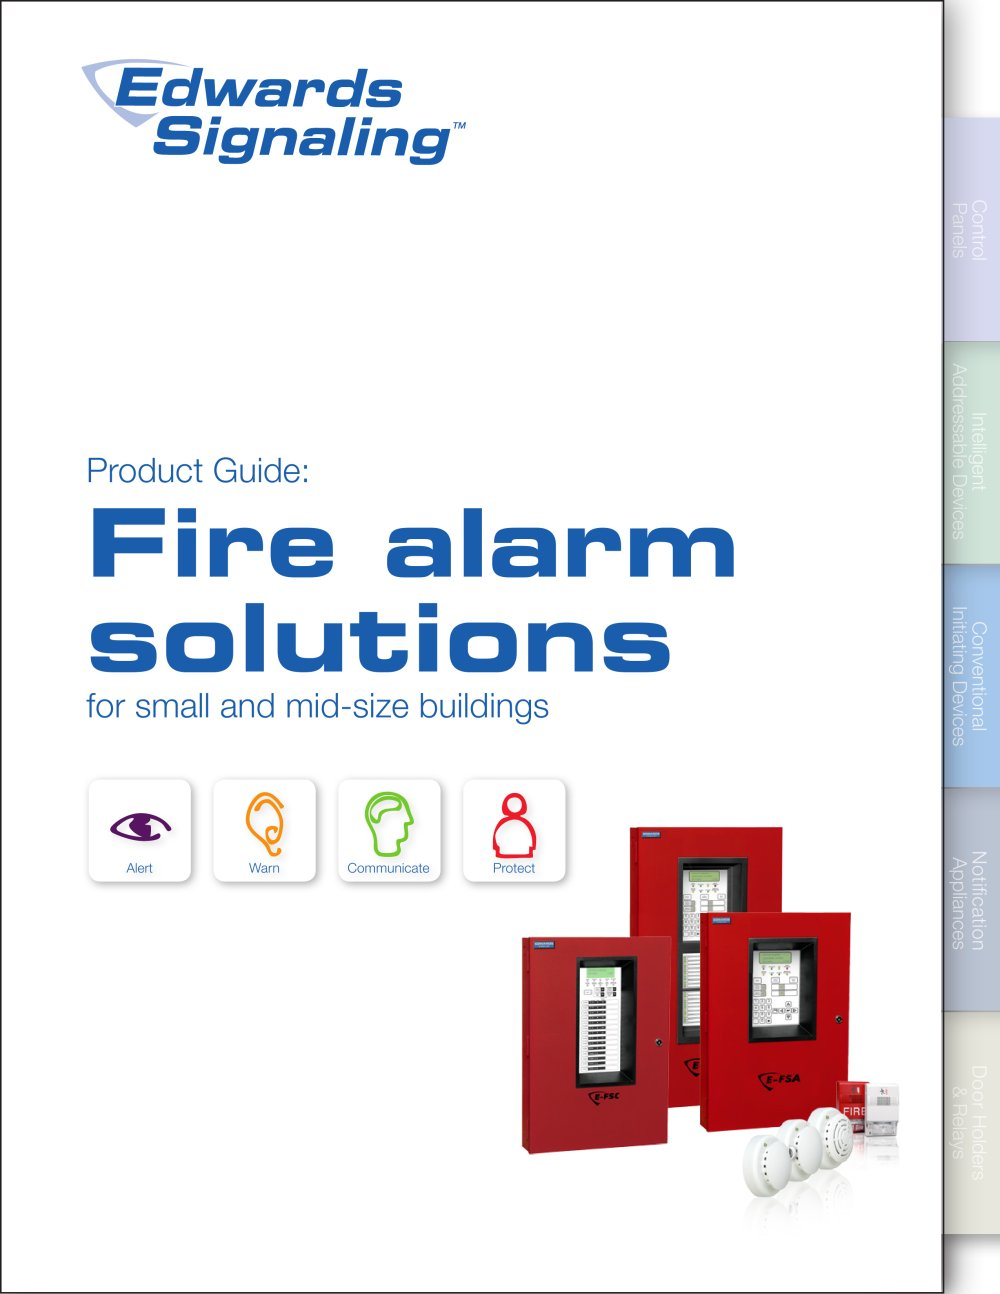 fire alarm product guide 252073_1b?resize\\\=840%2C1087 siemens fdbz492 hr wiring diagram gandul 45 77 79 119 fdcio422 wiring diagram at bayanpartner.co